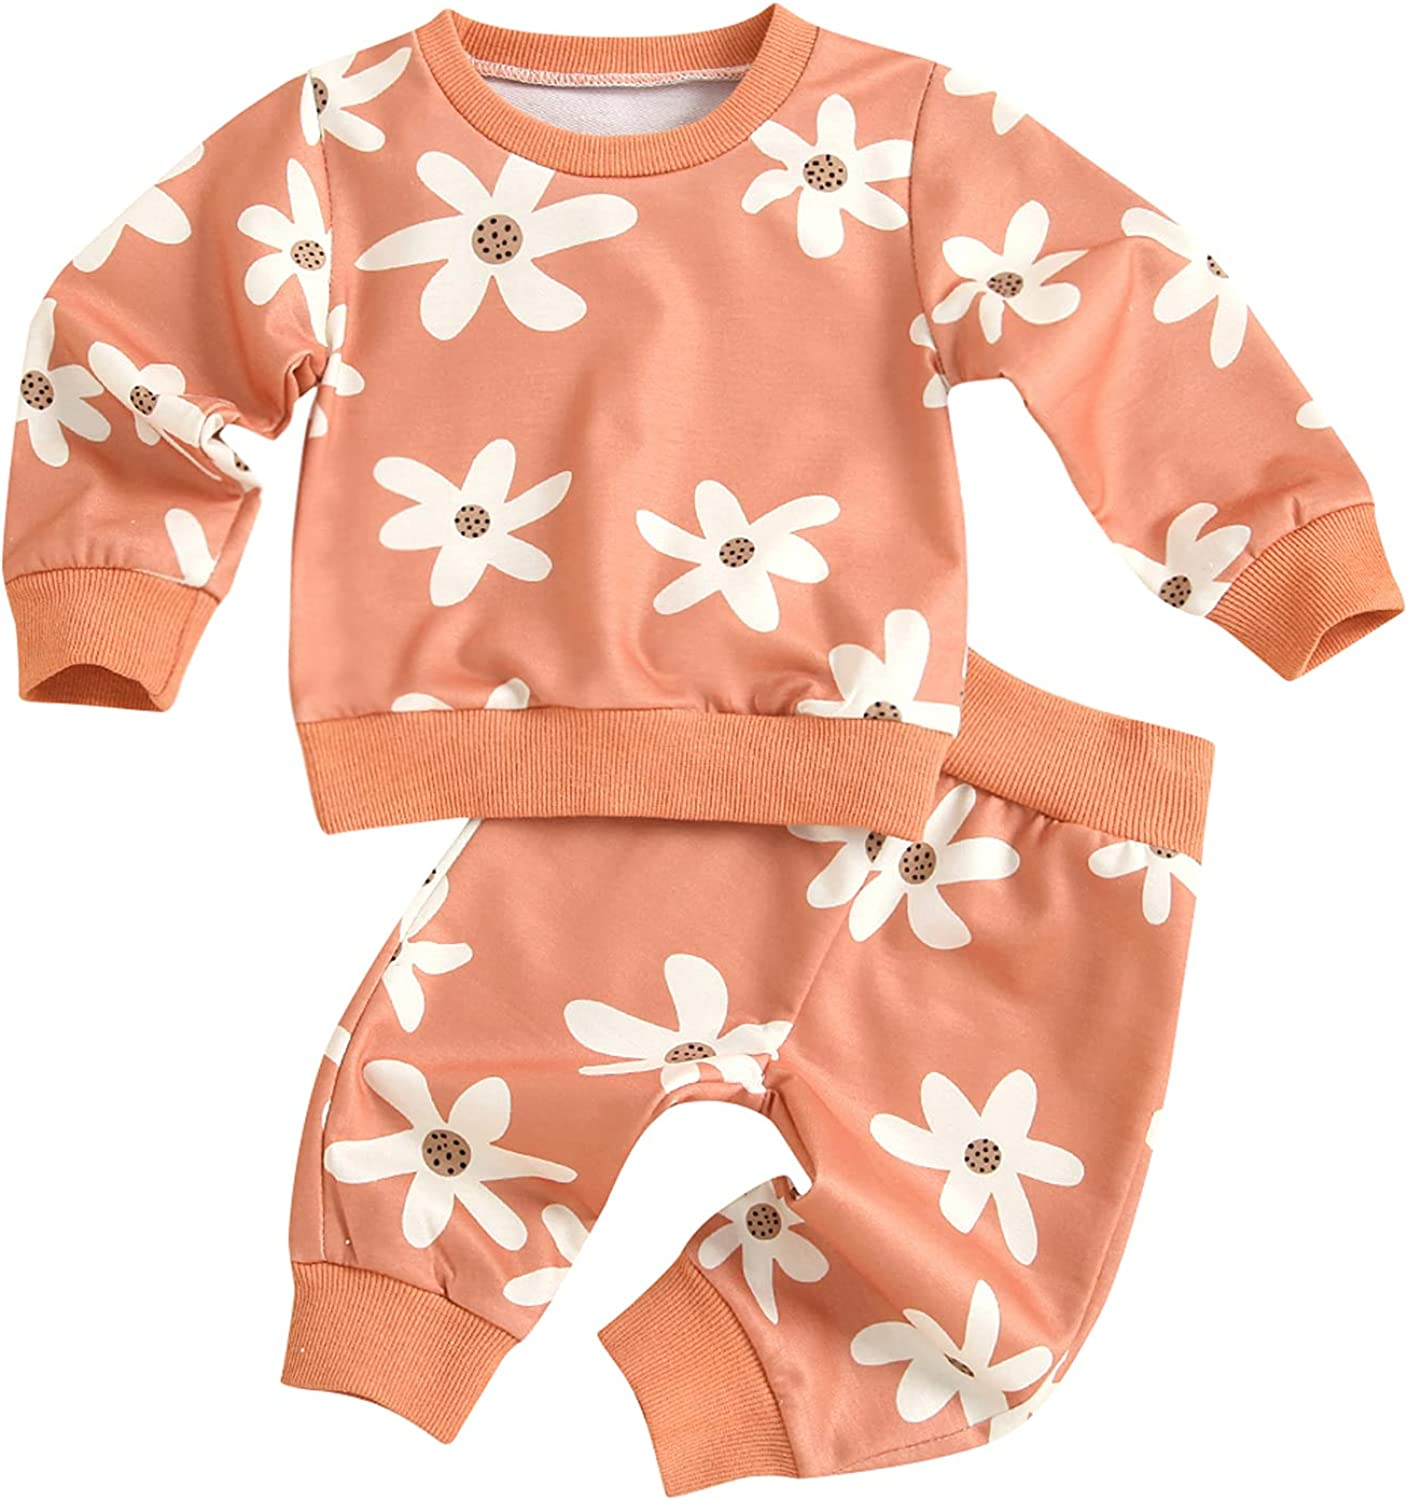 Newborn Infant Baby Girl Clothes Set Long Sleeve Flower Pullover Sweatshirts Long Pants Outfits